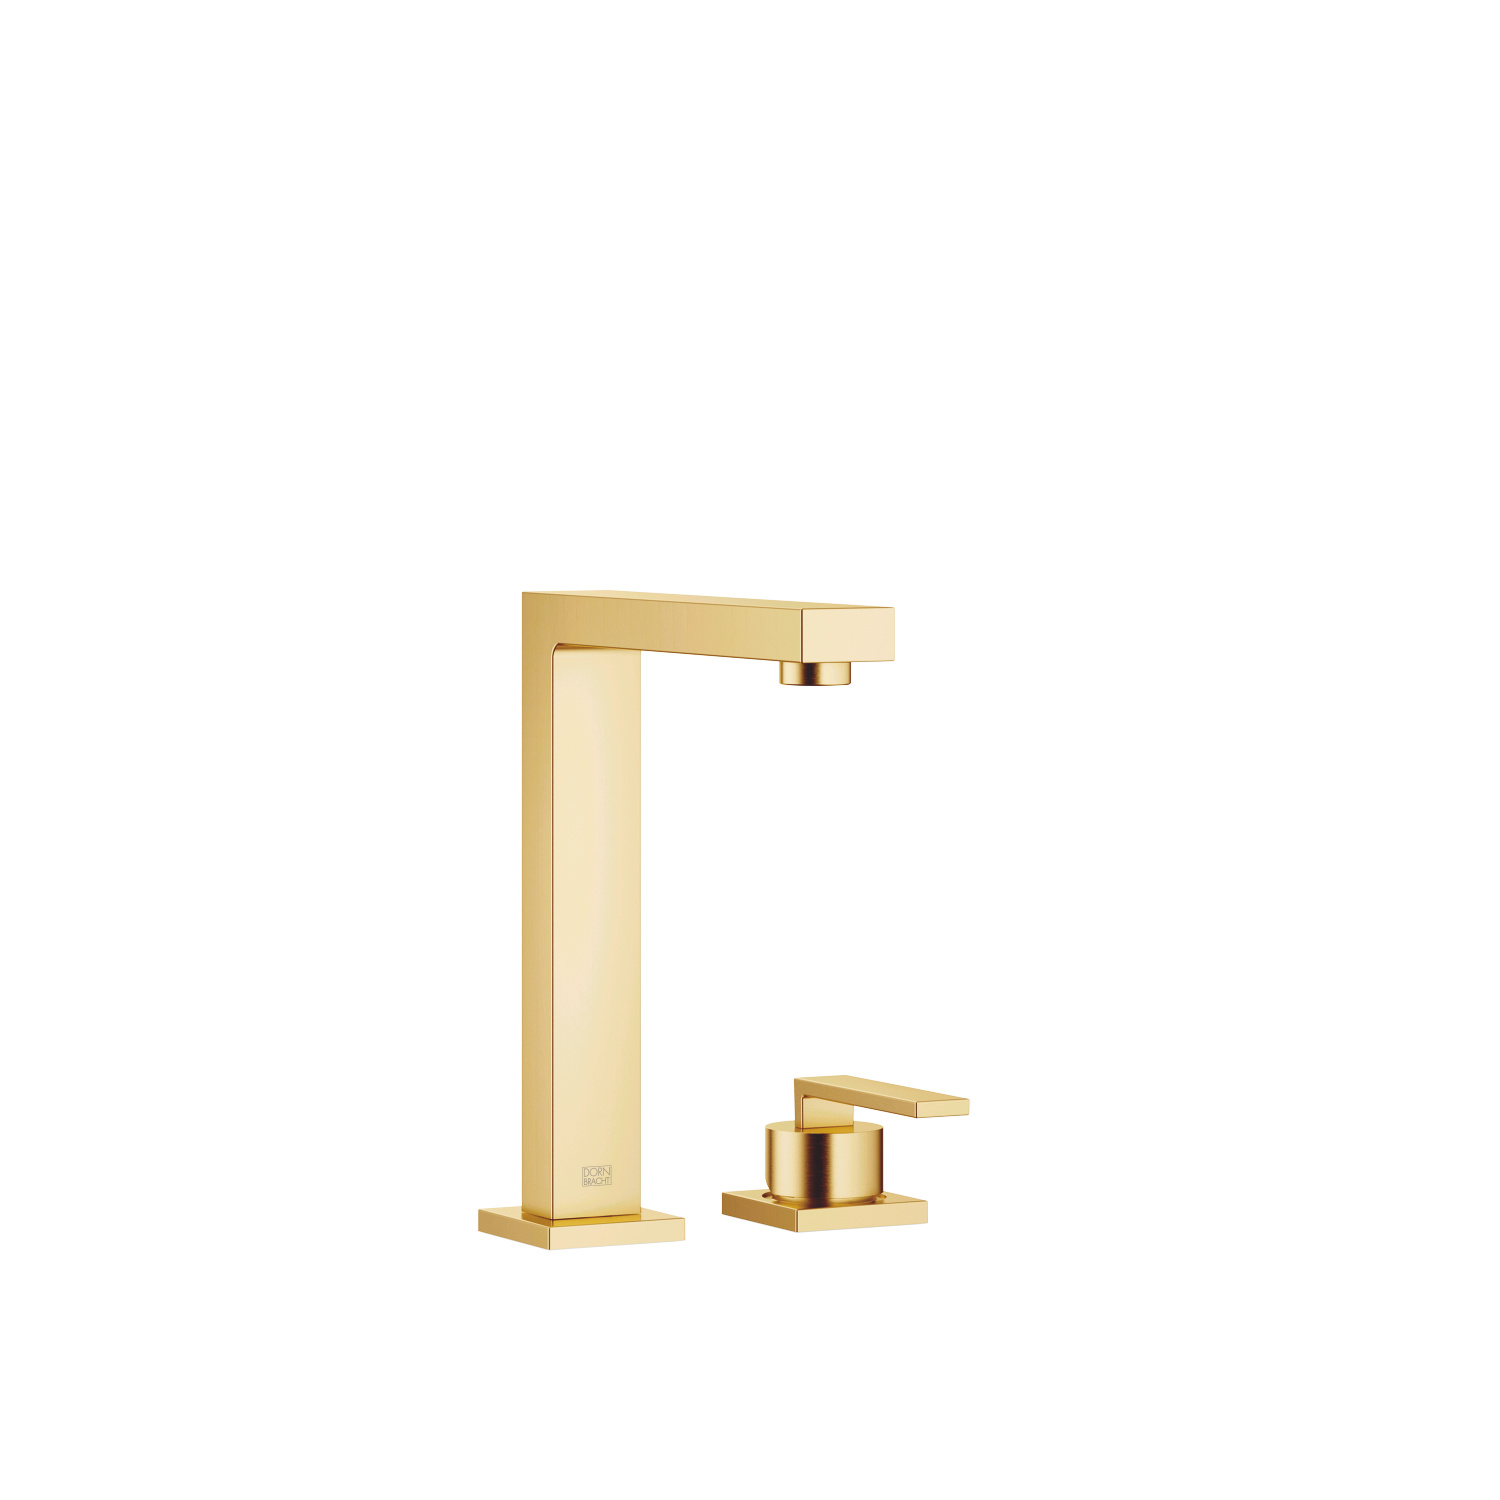 BAR TAP Two-hole mixer with individual rosettes - brushed Durabrass - 32 805 680-28